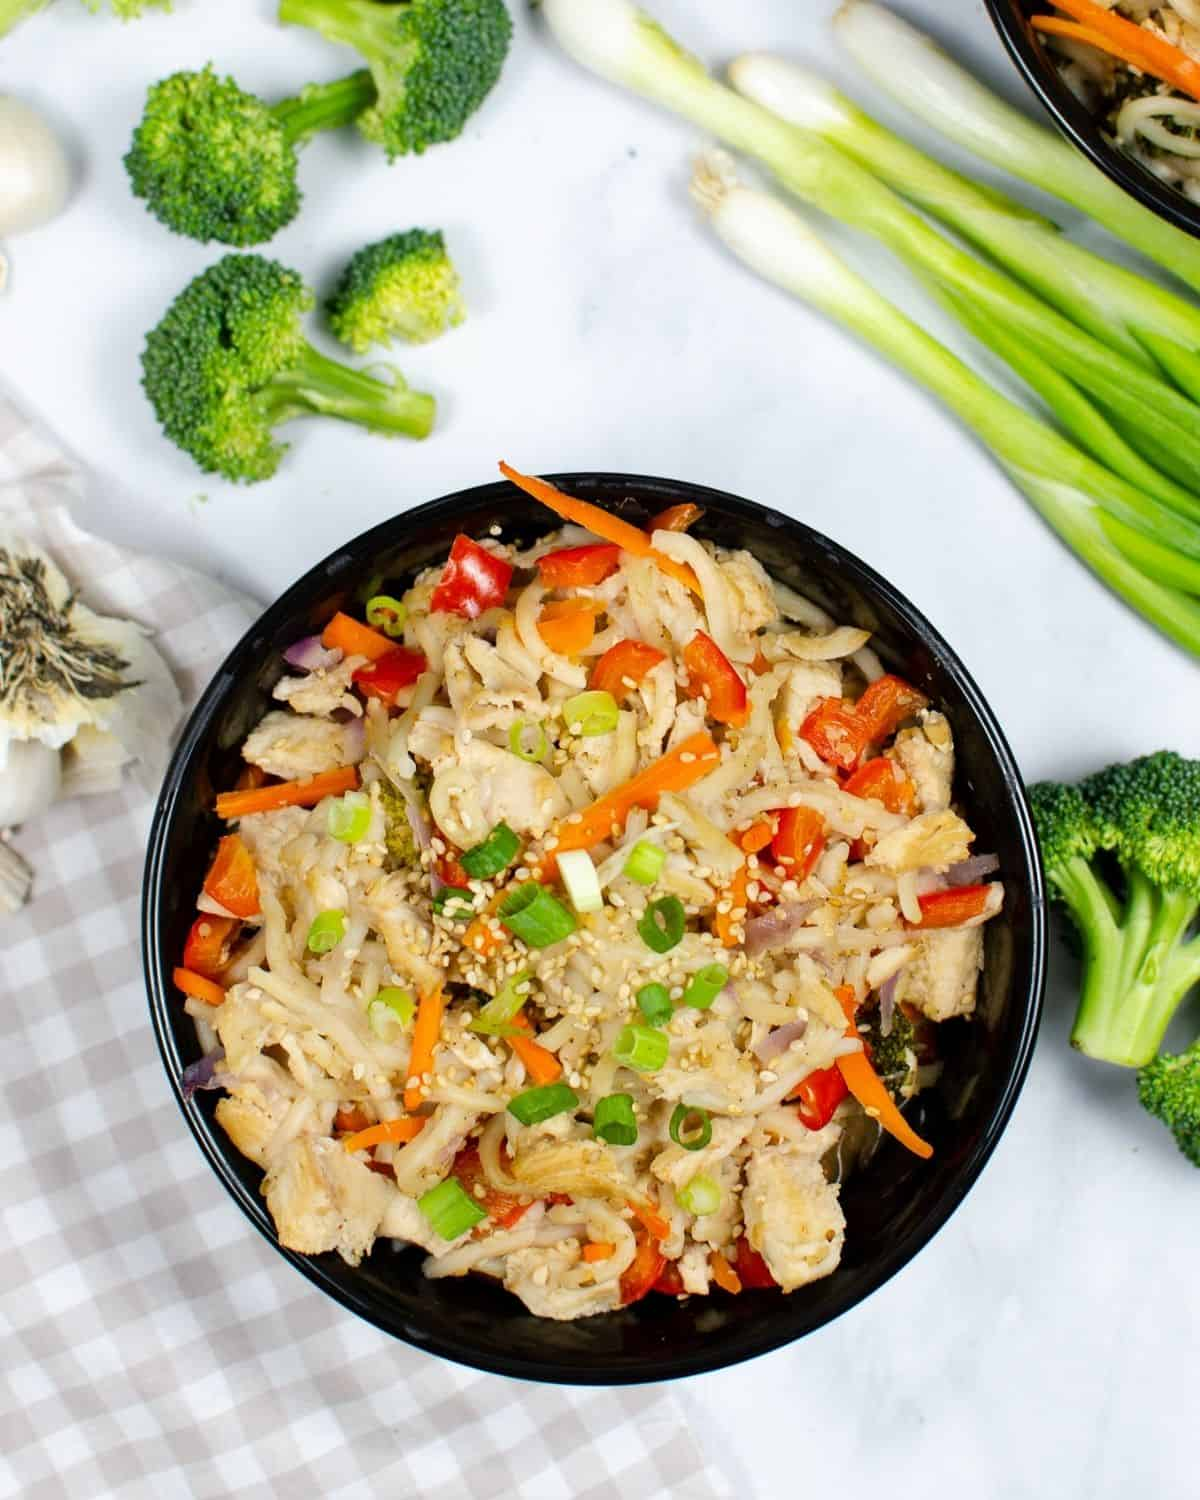 An overhead view of chicken chow mein in a black bowl with veggies around the bowl